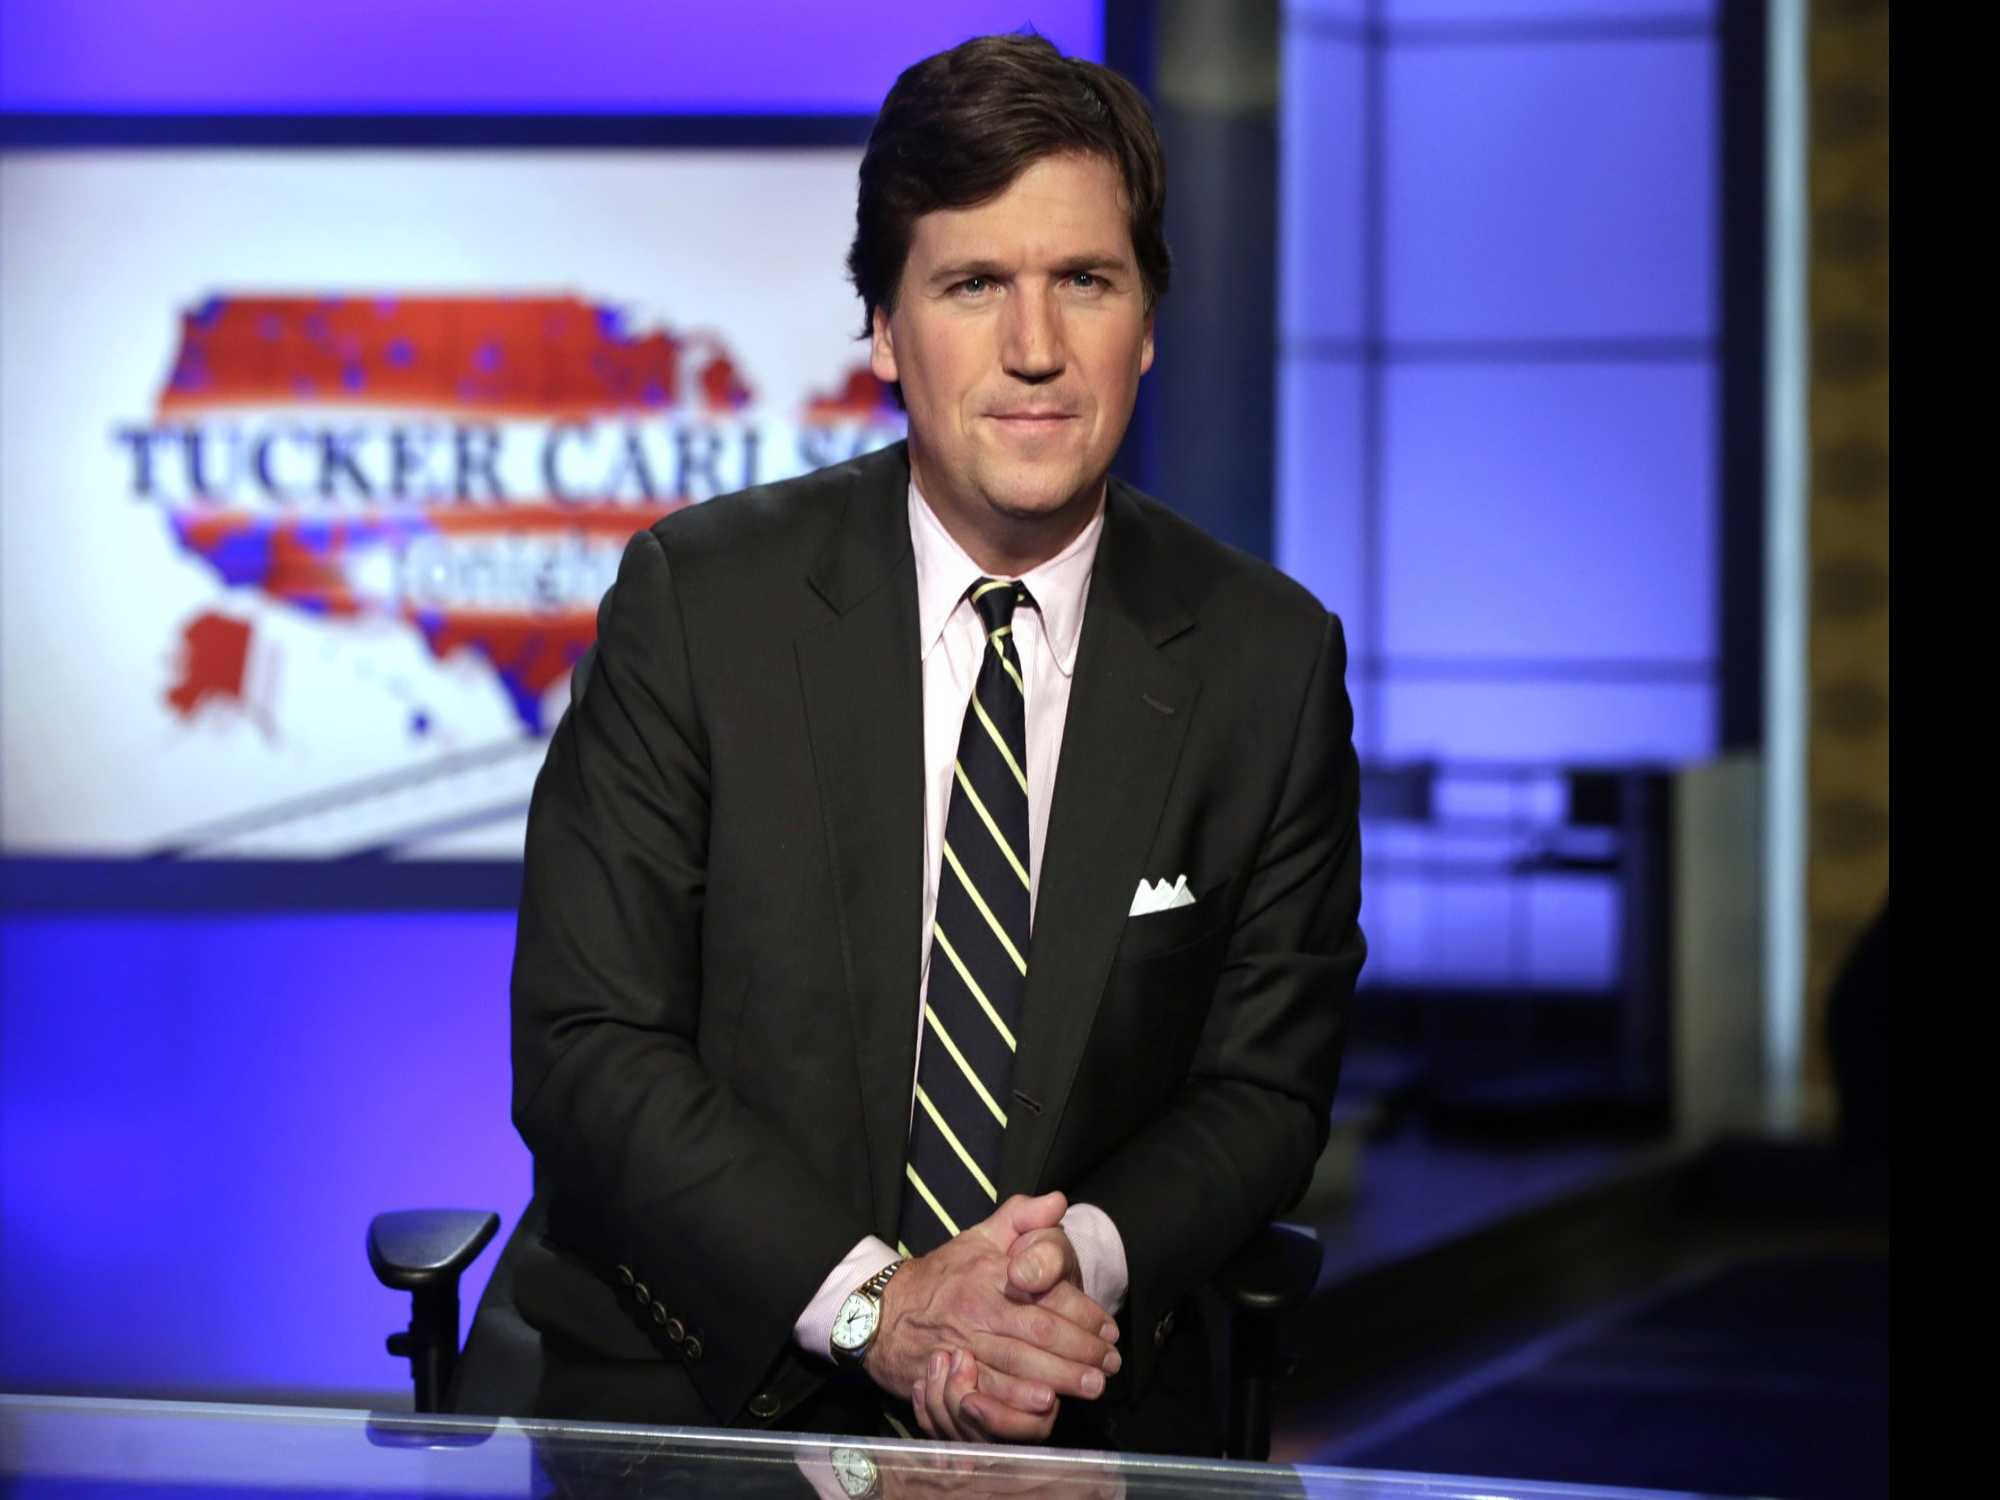 Carlson Comments Signal Brawl for Advertisers